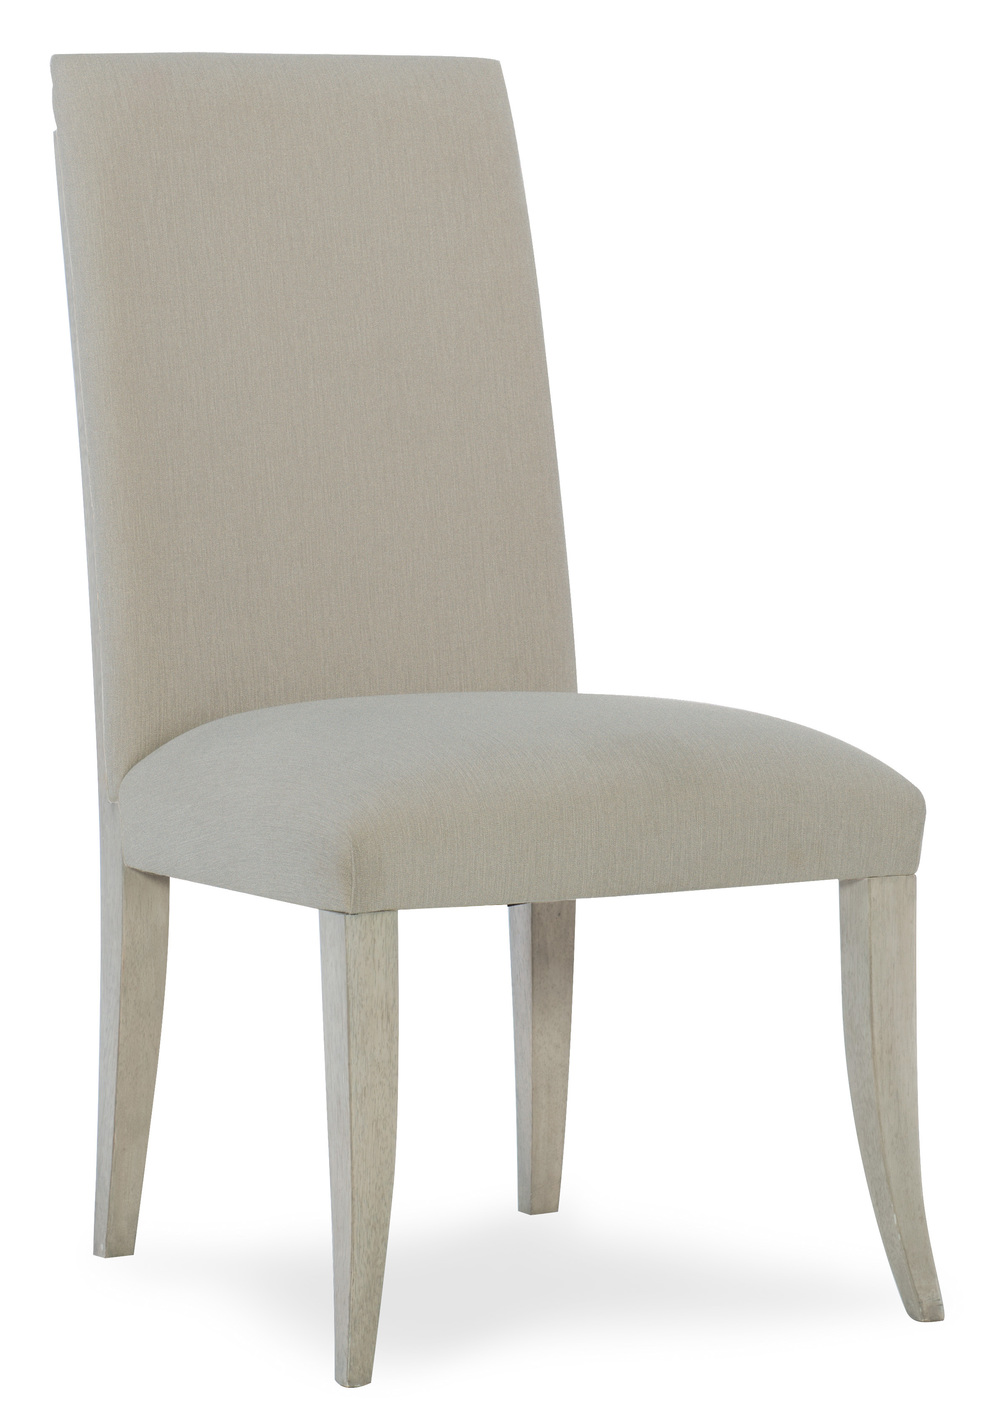 HOOKER FURNITURE CO - Upholstered Side Chair